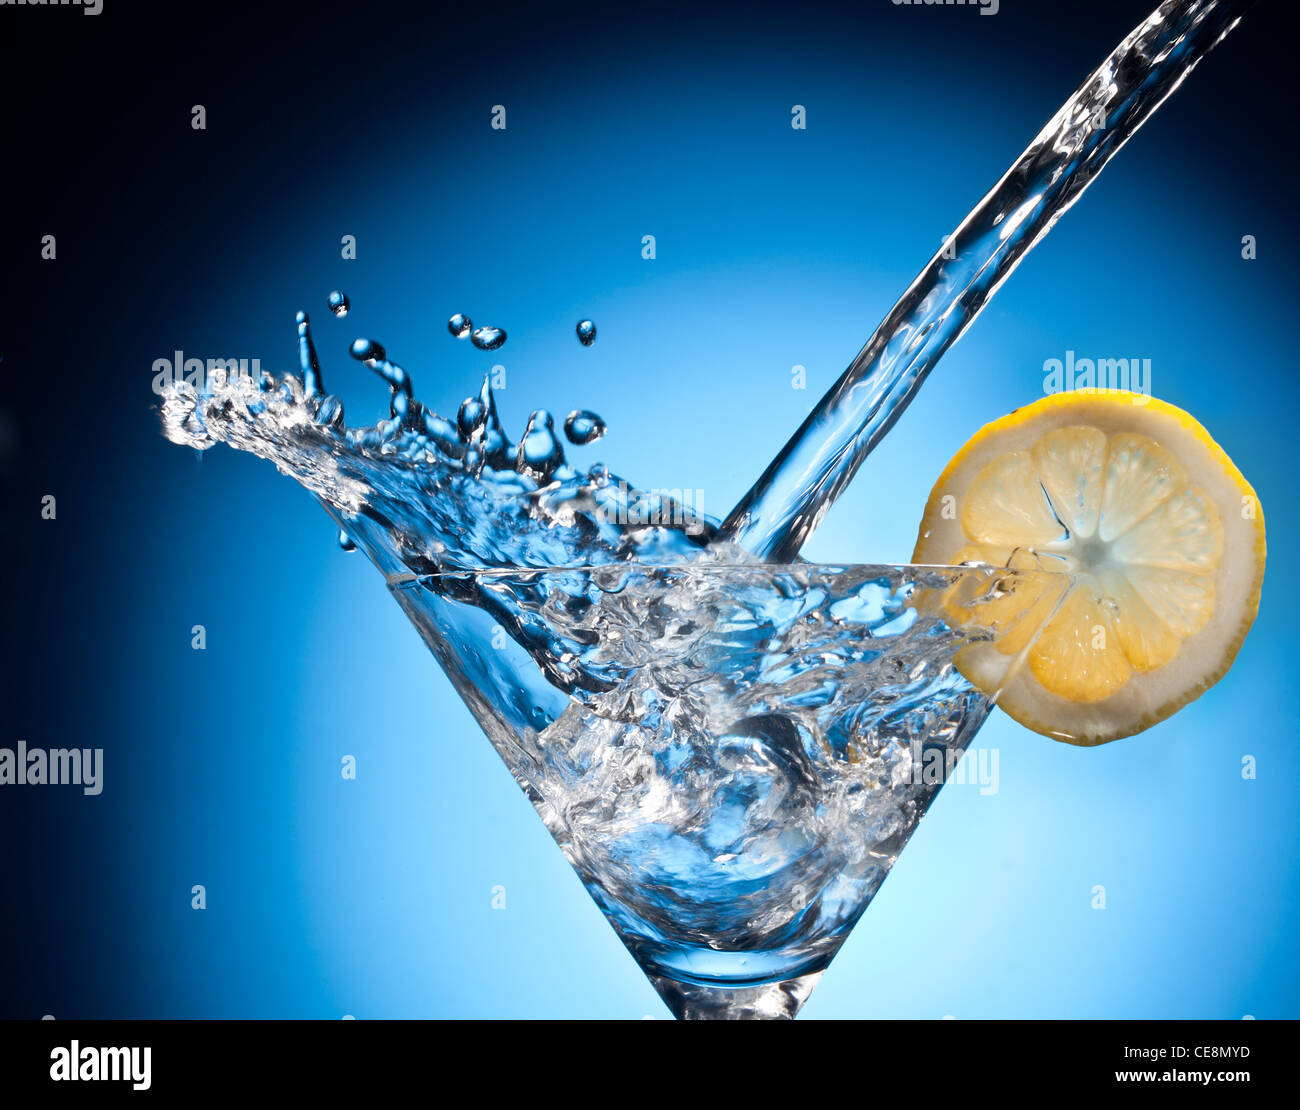 Splash from pouring martini into the glass. Object on a blue background. - Stock Image